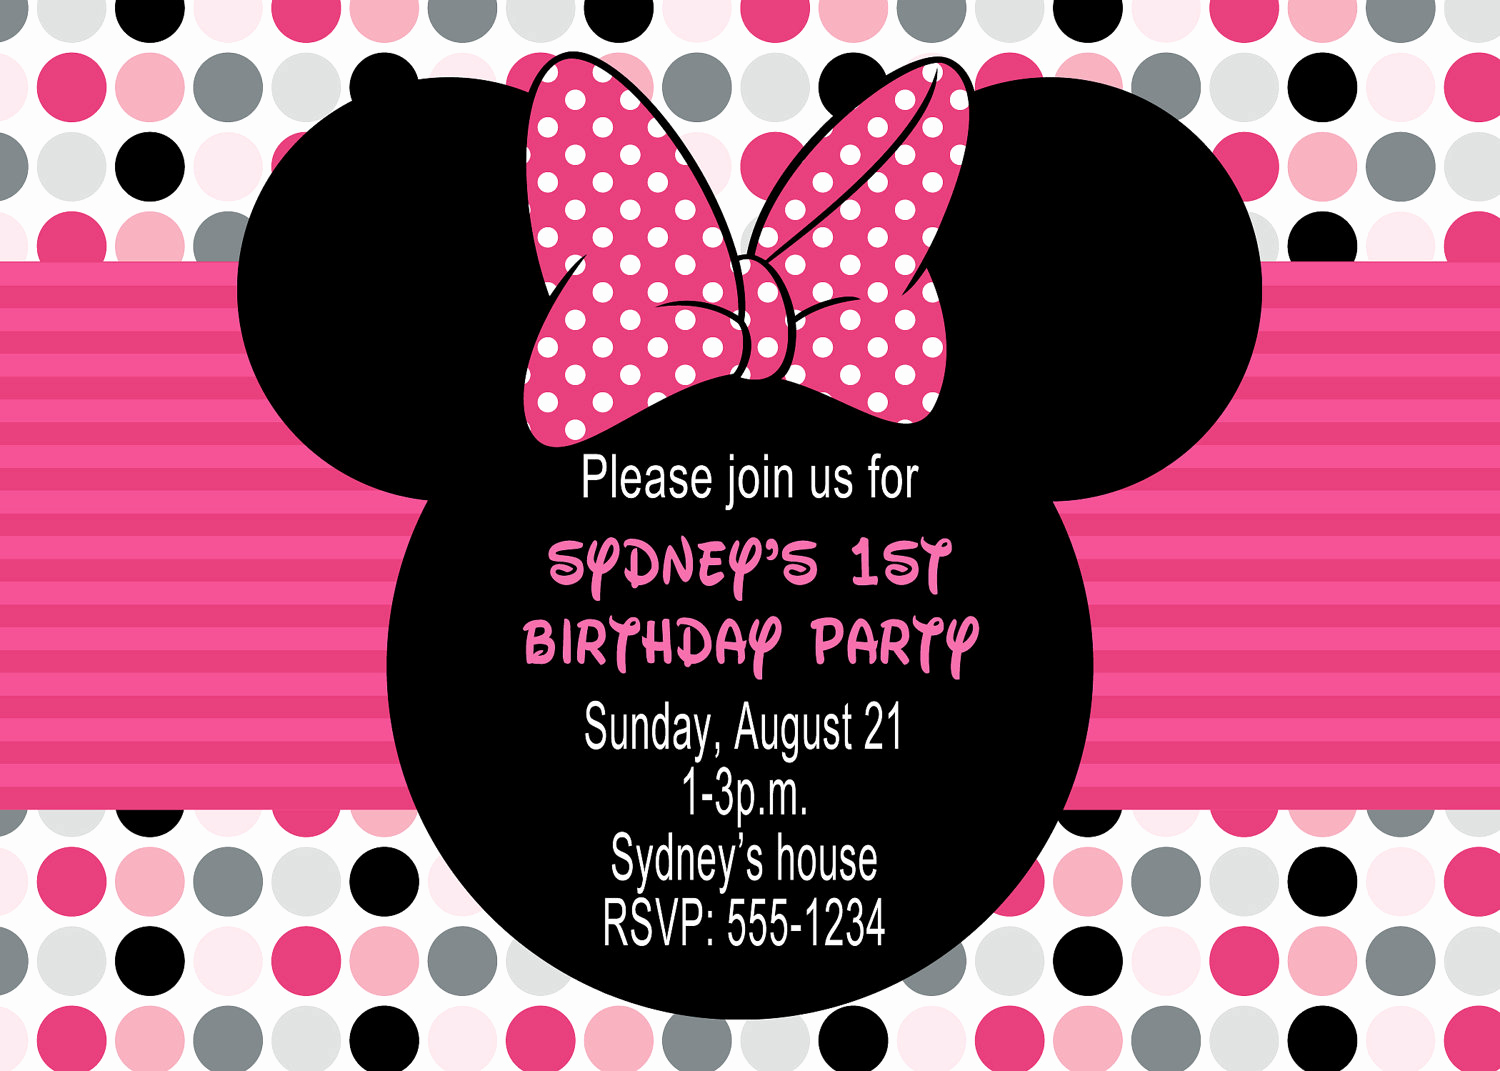 Minnie Mouse Invitation Template Beautiful Minnie Mouse Birthday Party Invitations